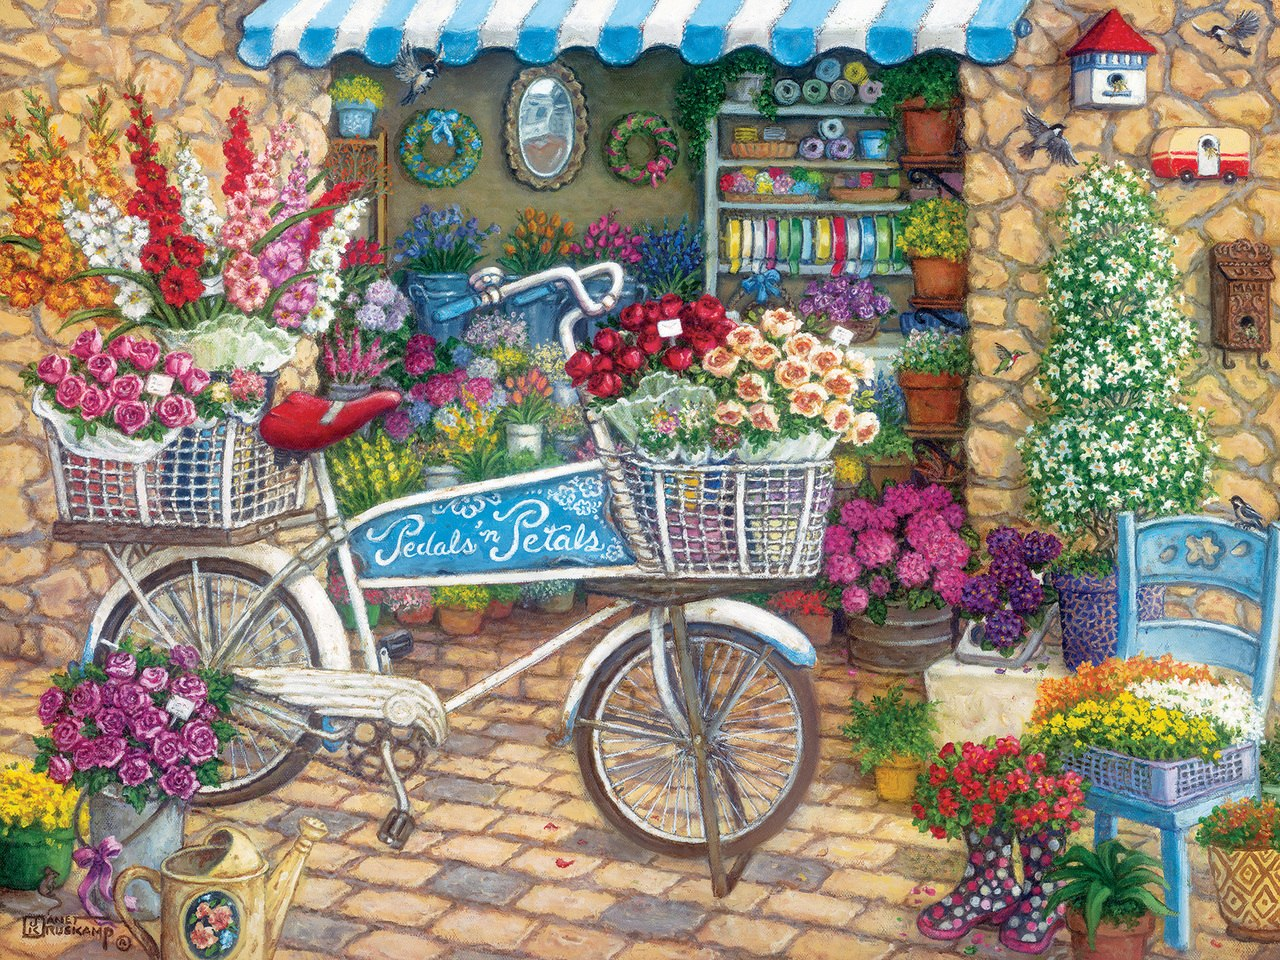 Pedals 'n' Petals - 275pc Easy Handling Puzzle by Cobble Hill  			  					NEW